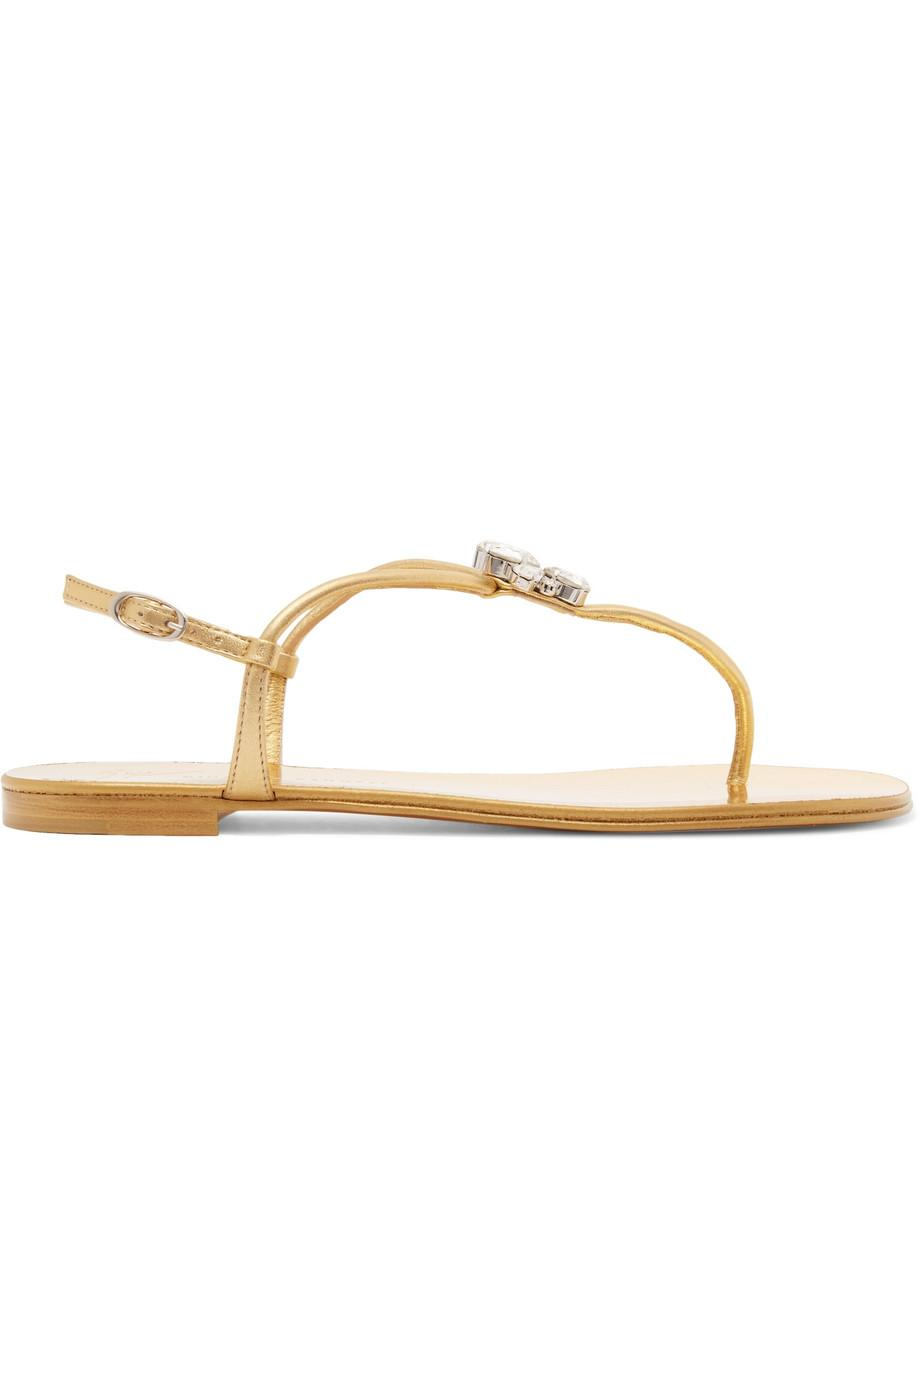 Nuvorock Crystal-embellished Metallic Leather Sandals - Gold Giuseppe Zanotti Clearance Online Ebay Outlet Clearance Discounts New Arrival Sale Online X3bTWL1h